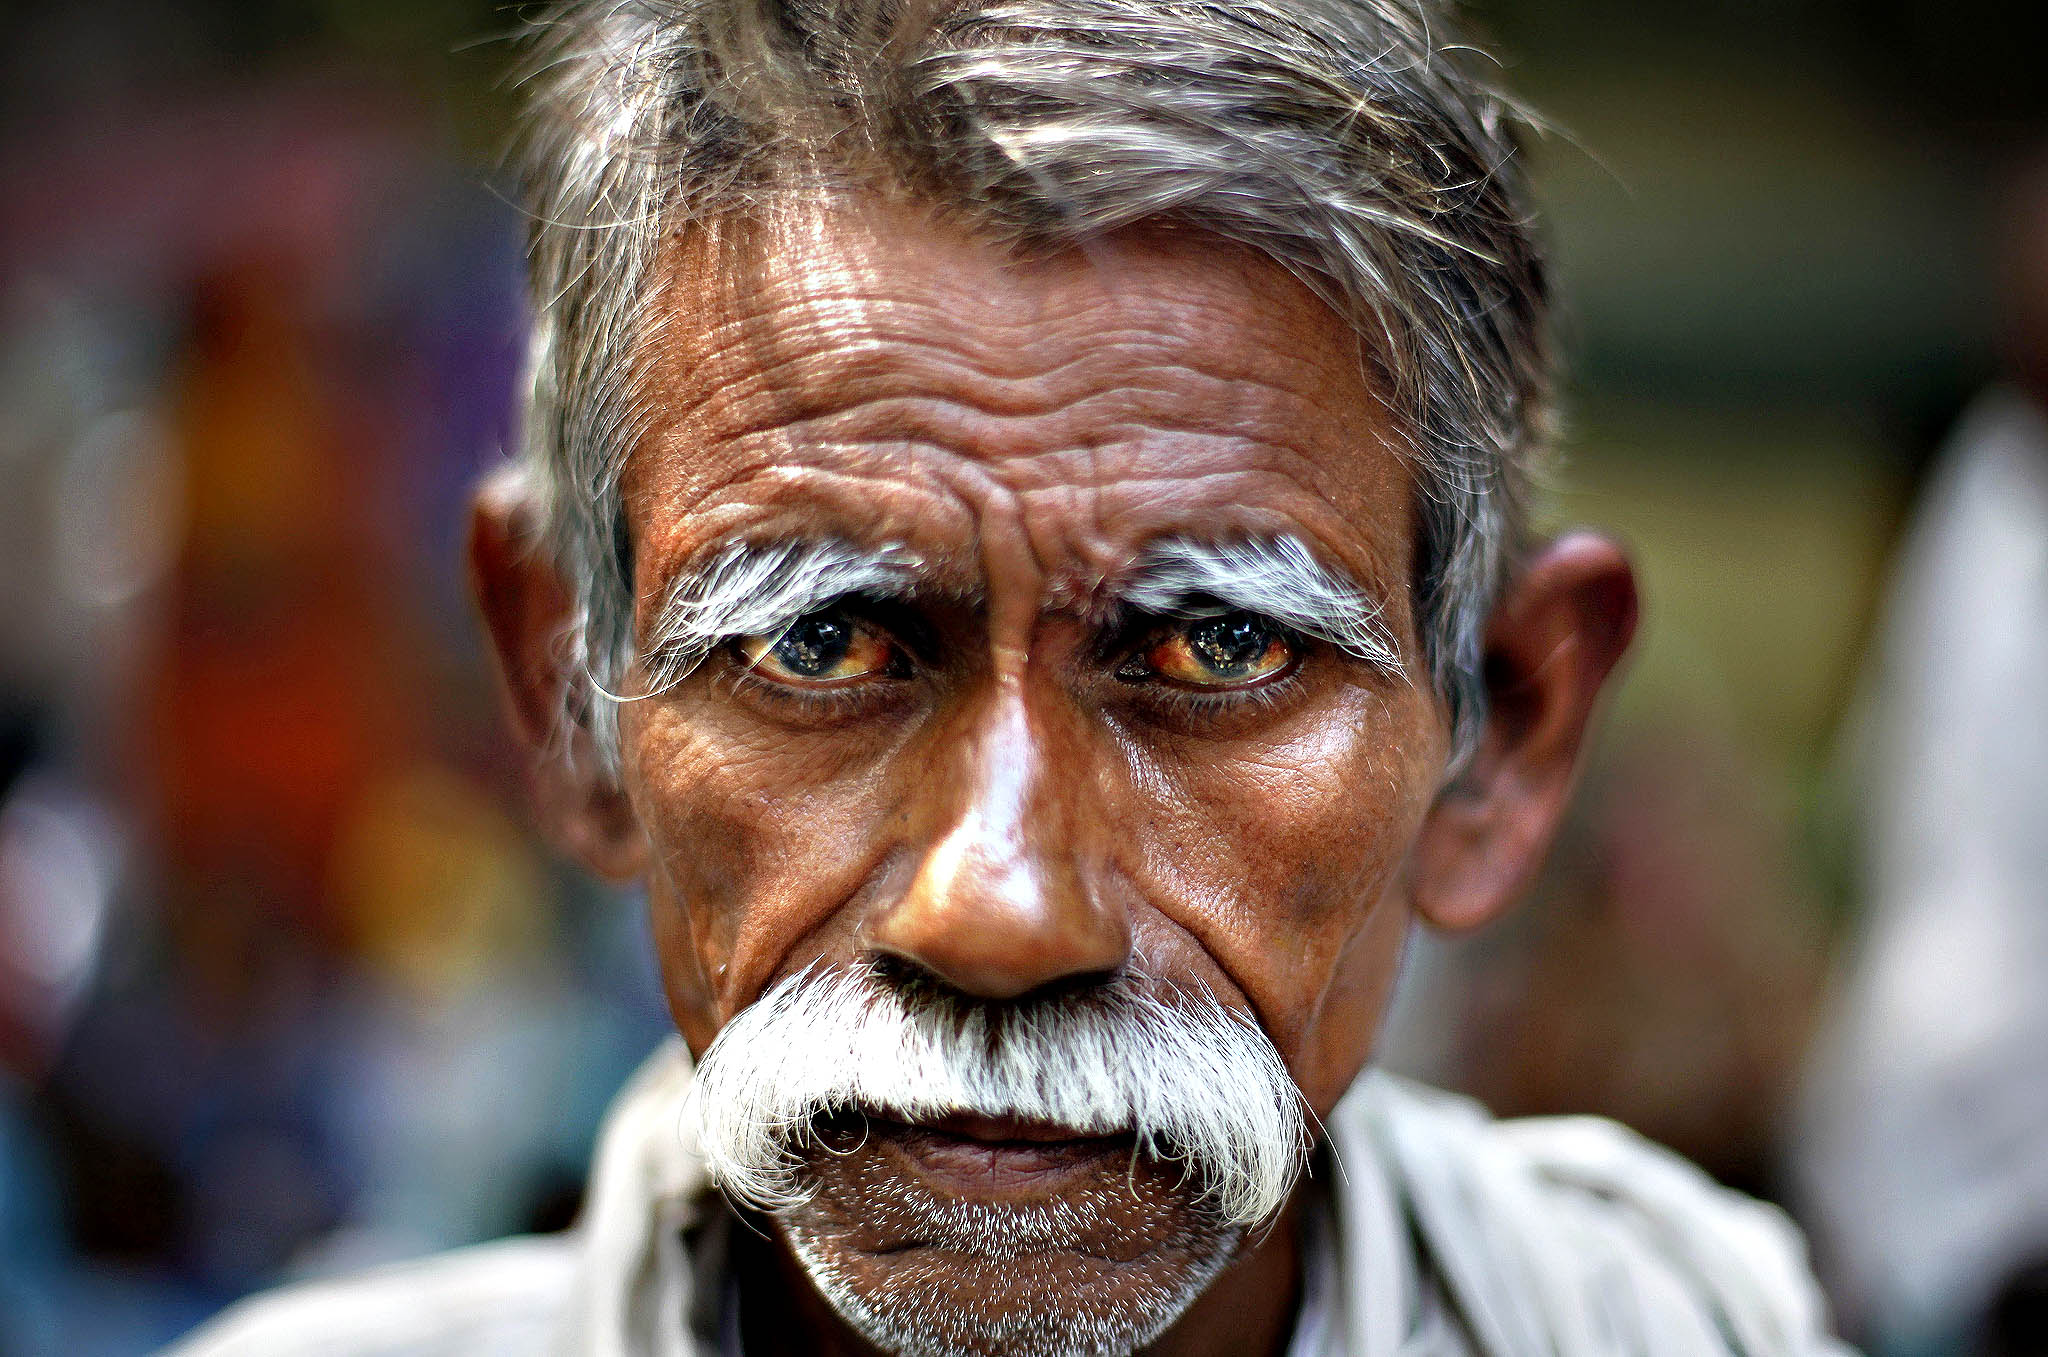 Baba Din, an elderly member of India's landless, poor farmers and the tribal community, listens to a speaker during a protest at Jantar Mantar, an area near the Indian parliament where citizens from across the country assemble for protests, in New Delhi, India, Thursday, Oct. 3, 2013. The farmers were protesting against government procuring land for setting up industry and not providing enough subsidy to farmers among several other grievances.